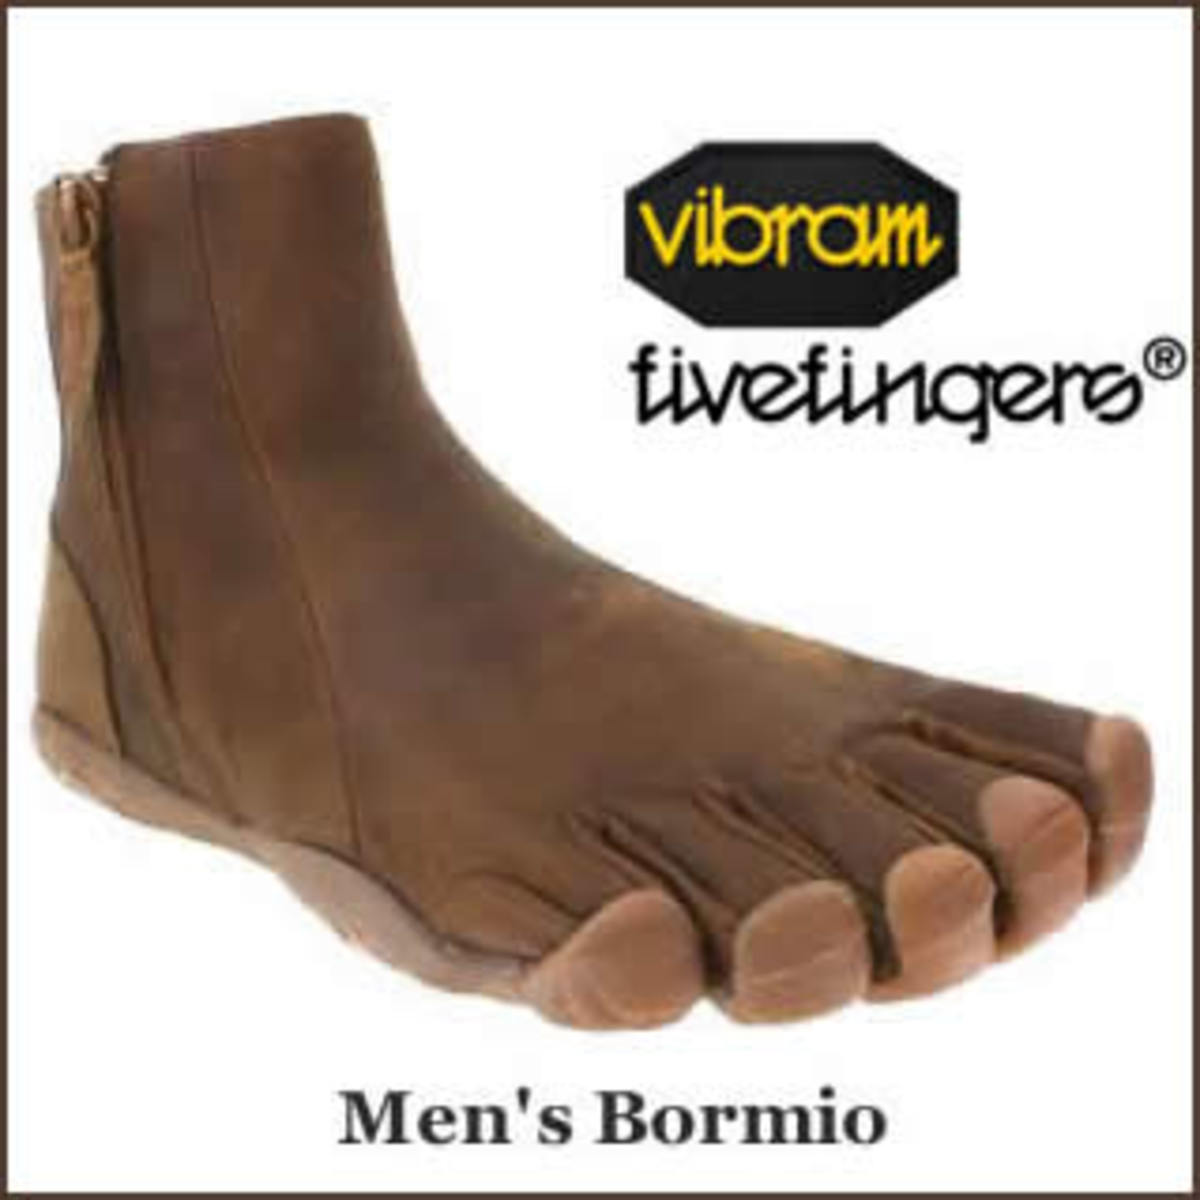 Vibram Five Fingers Boots Released